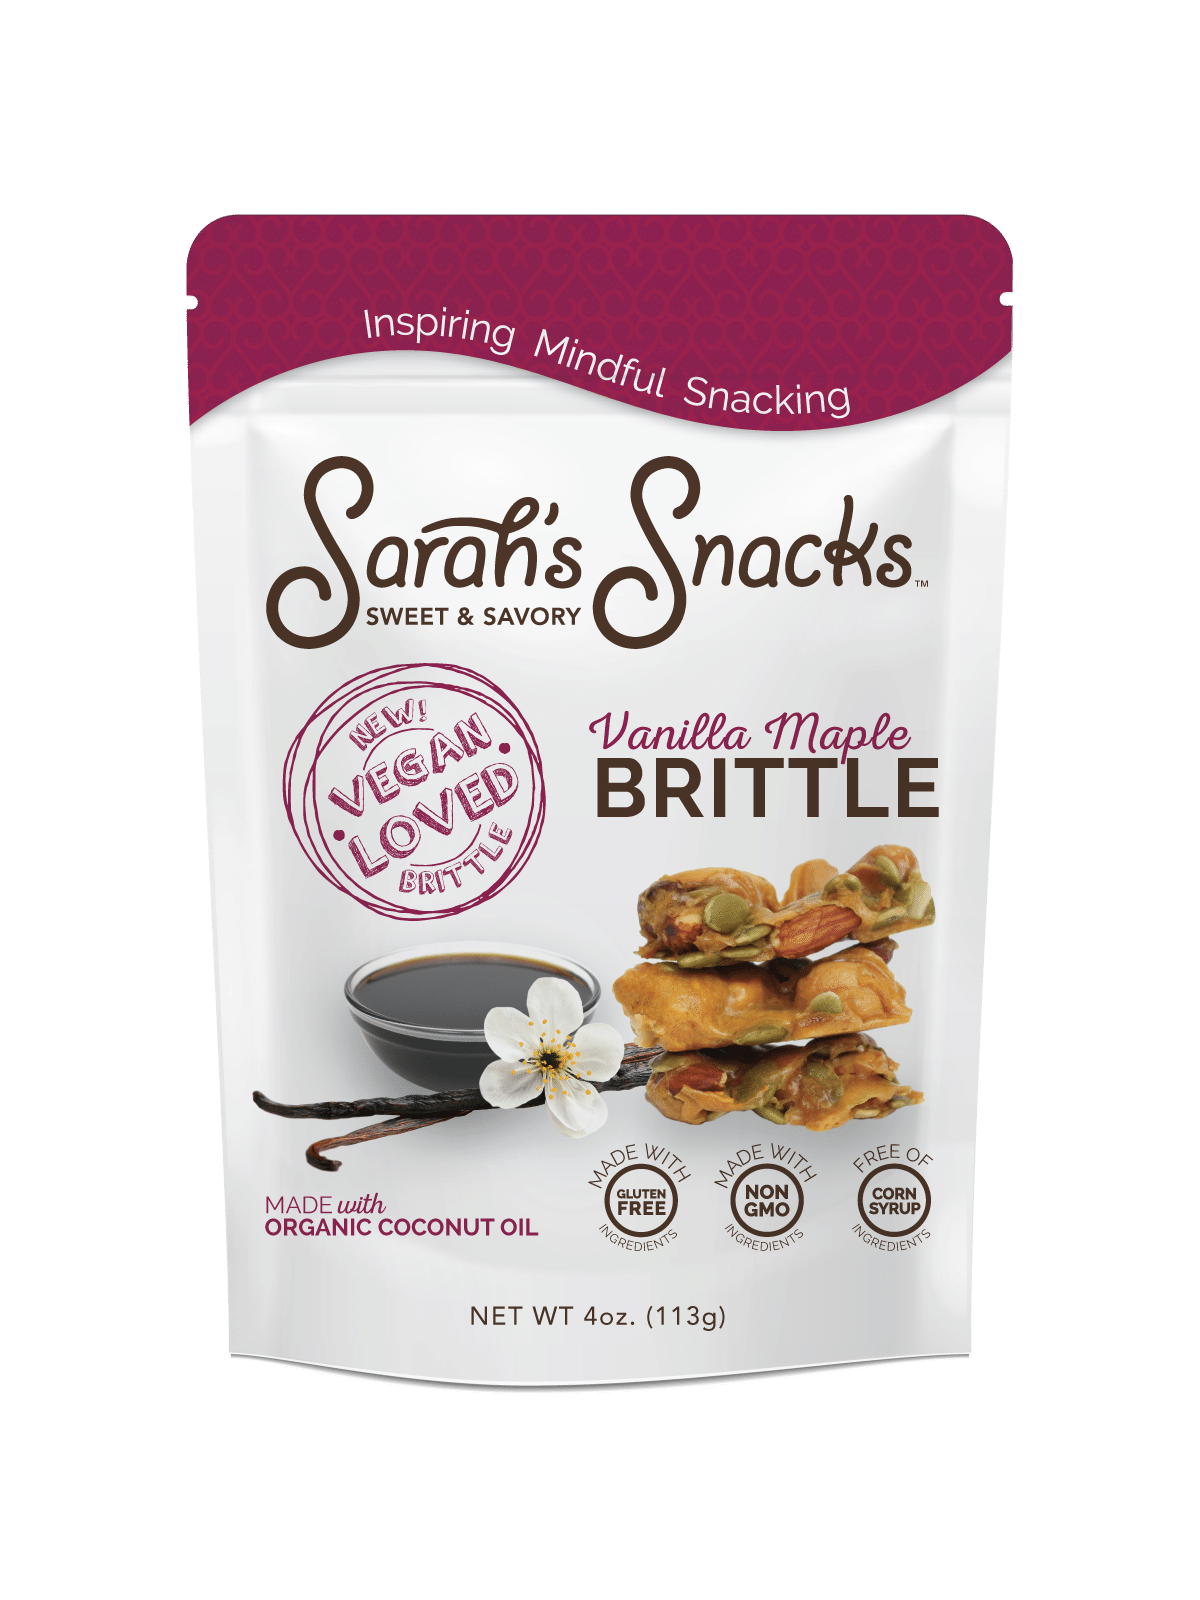 Sarah's Snacks to Launch Vegan Brittle at Fancy Food Show